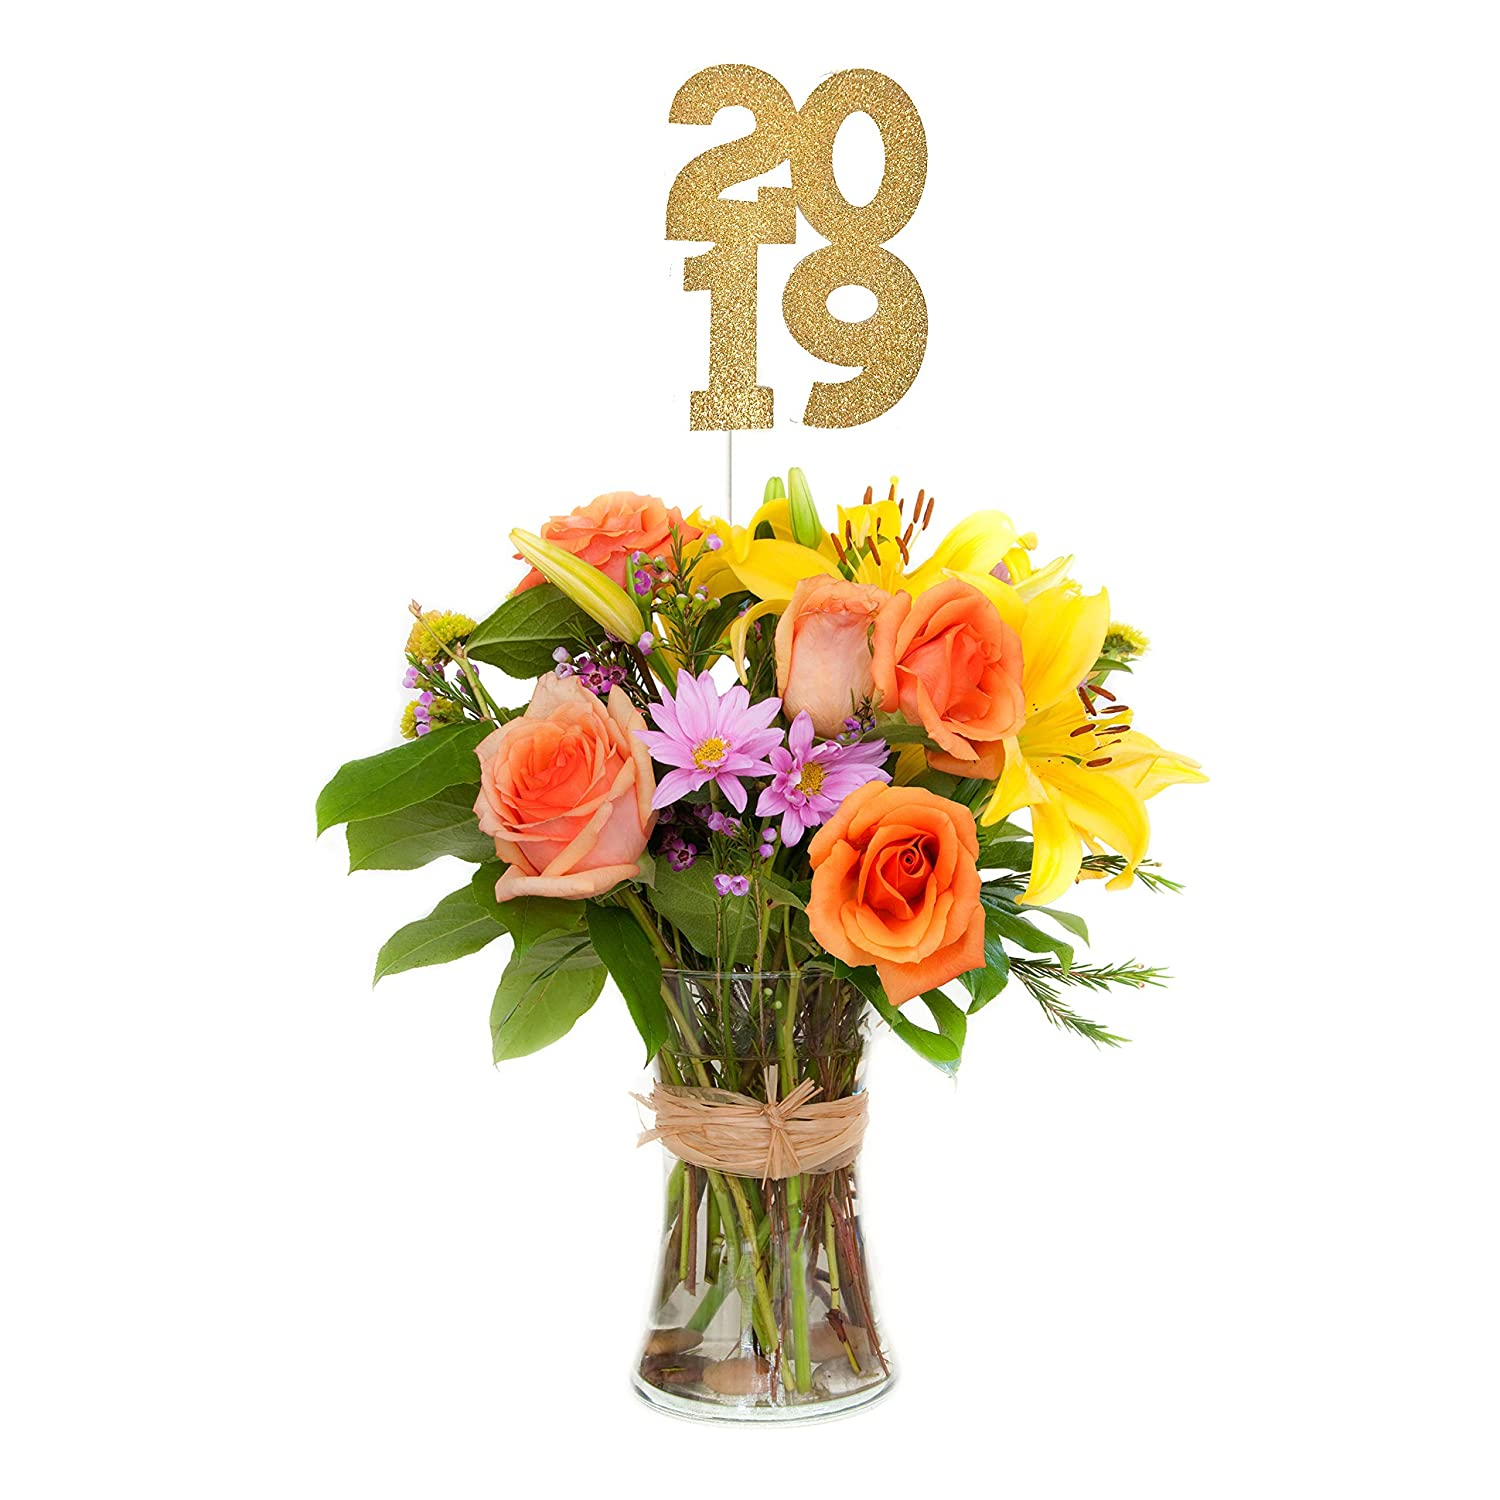 2019 Centerpiece Stick (Set of 3), Graduation Decorations 2019